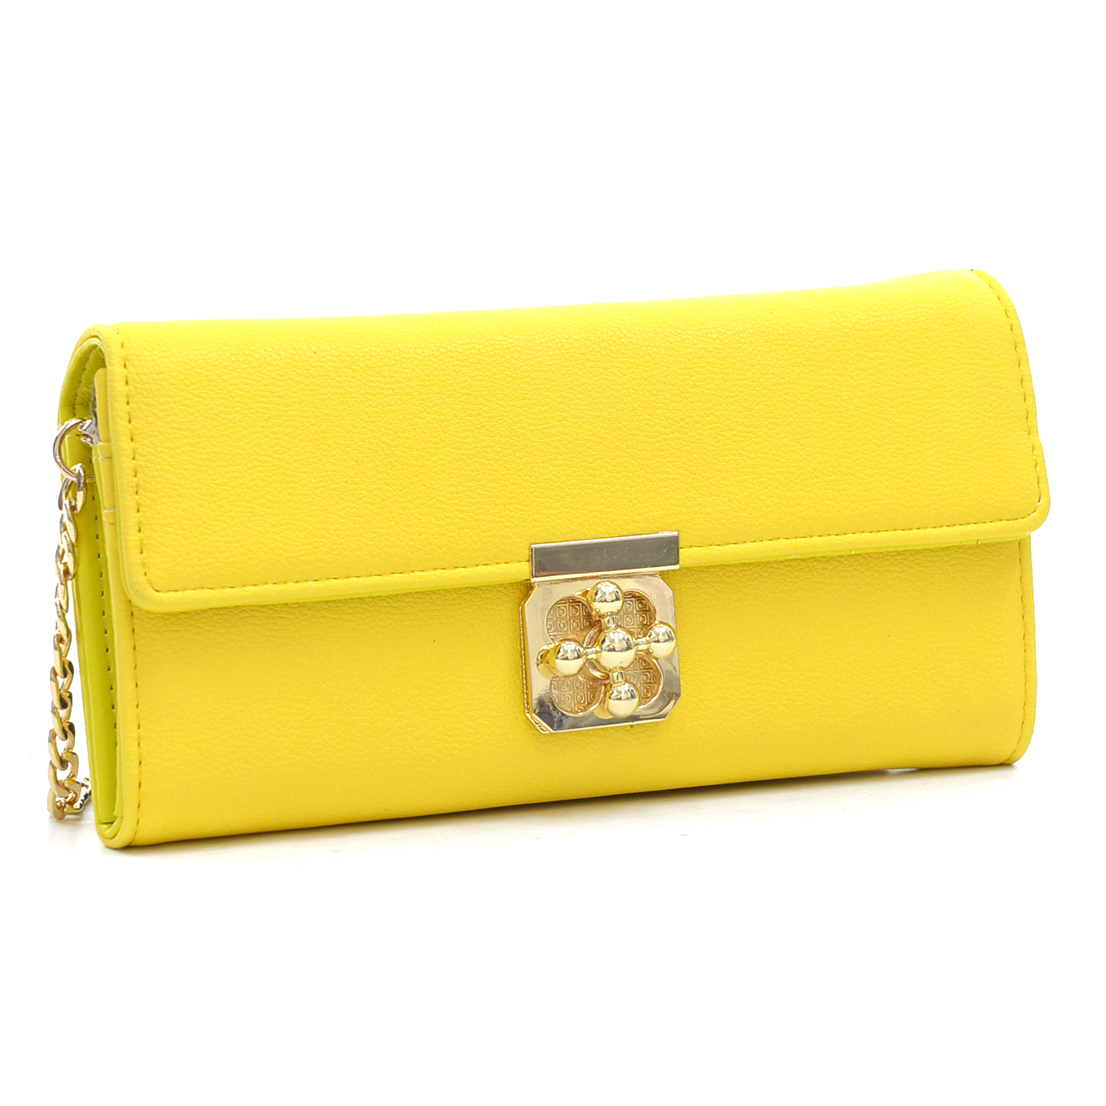 Gold-Tone Chained Faux Leather Twist-Lock Wallet